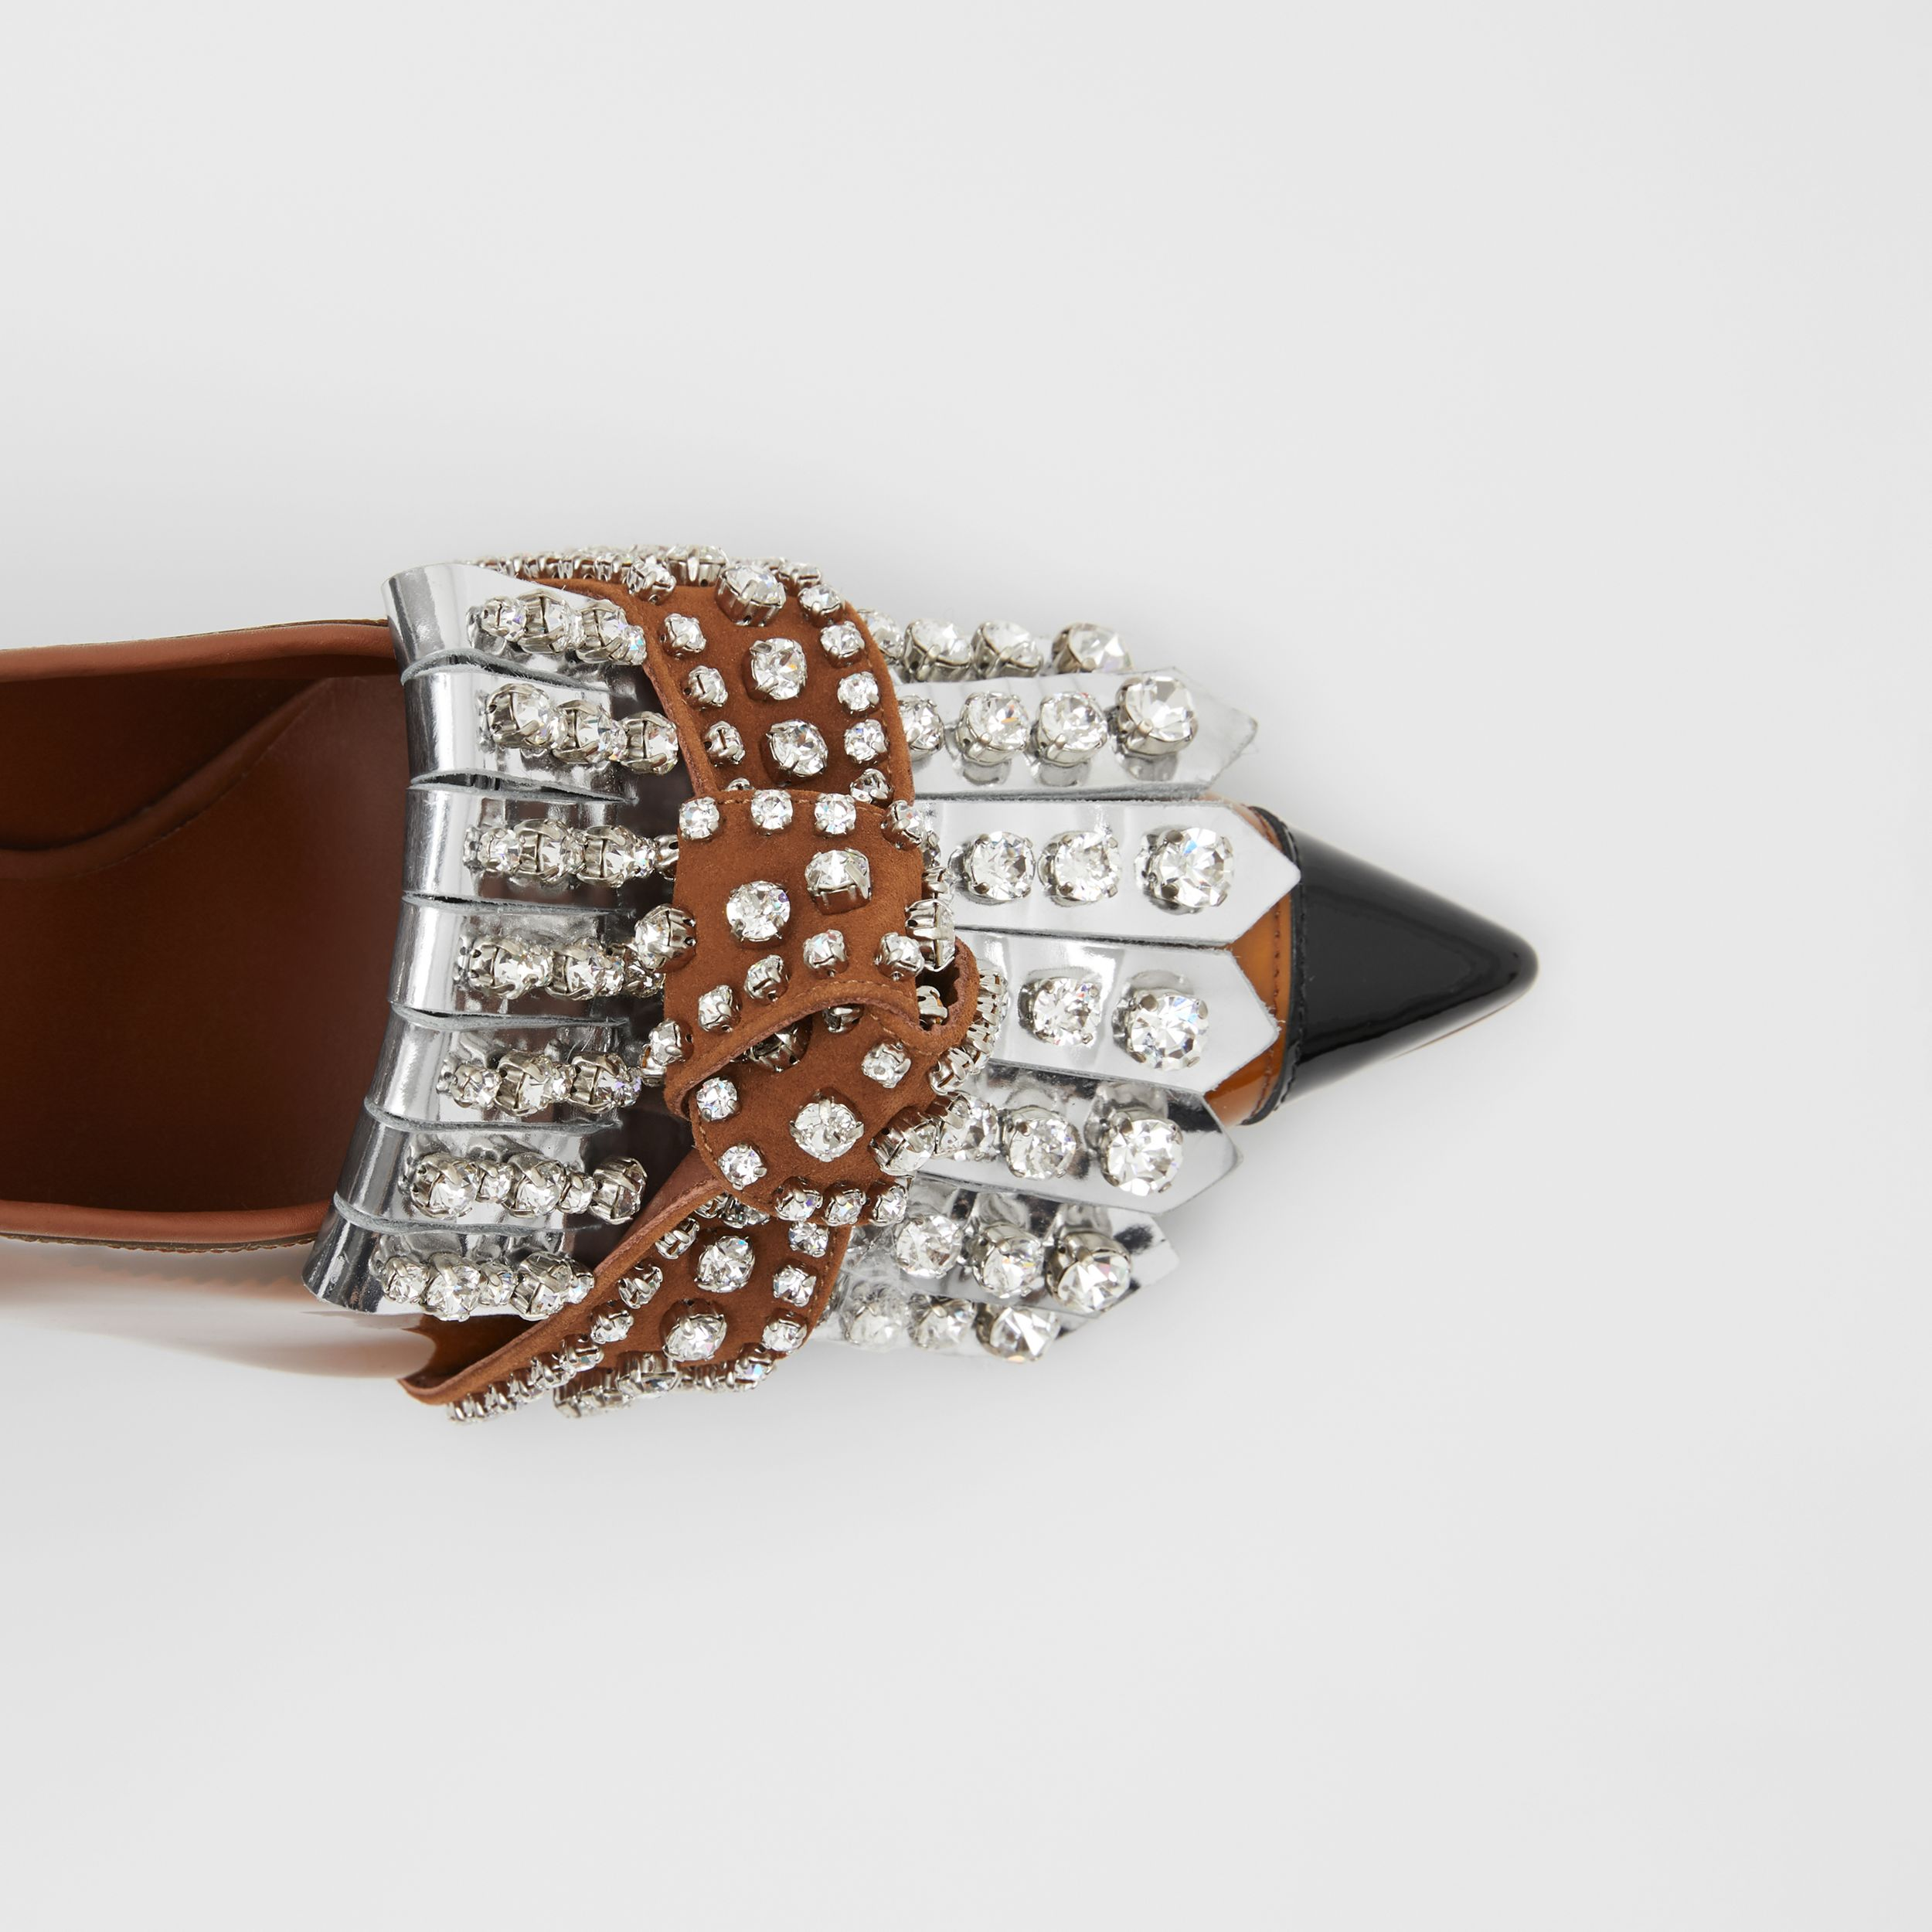 Crystal Kiltie Fringe Vinyl and Leather Point-toe Pumps in Malt Brown/black - Women | Burberry - 2